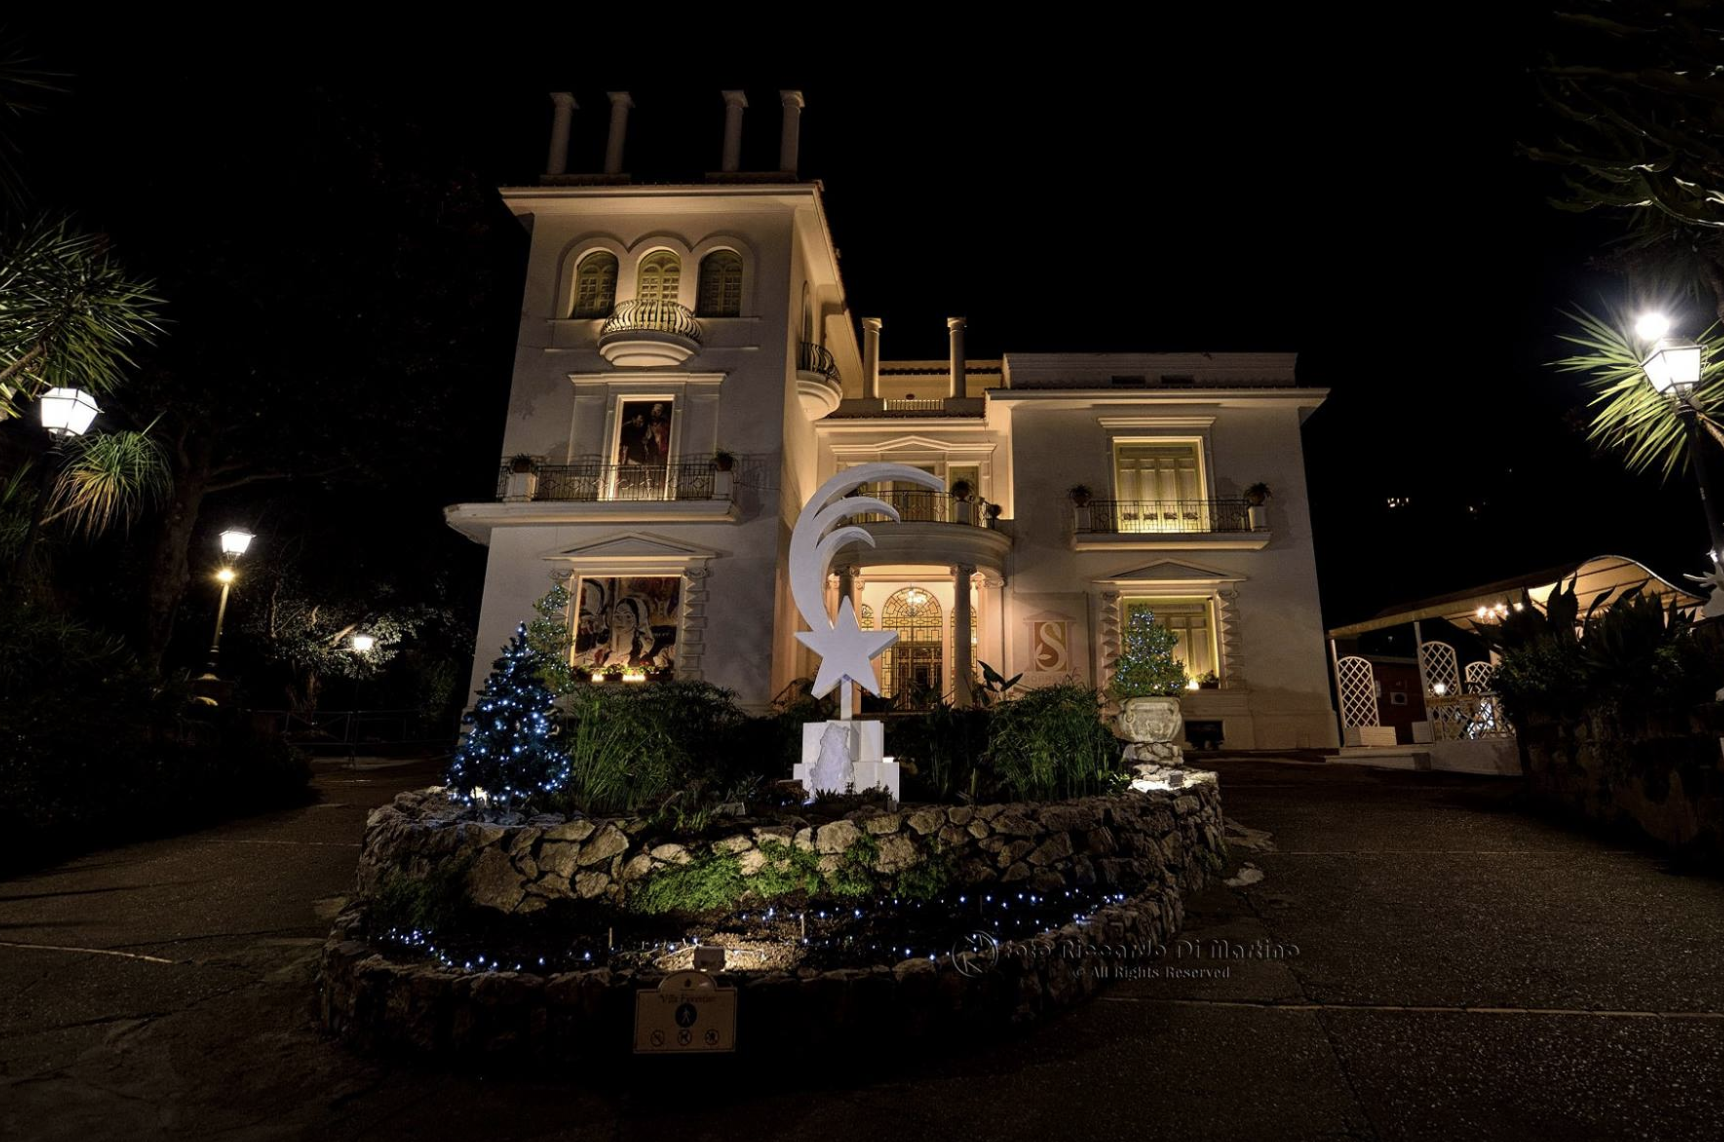 Villa Fiorentino hosts the Santa Claus Village